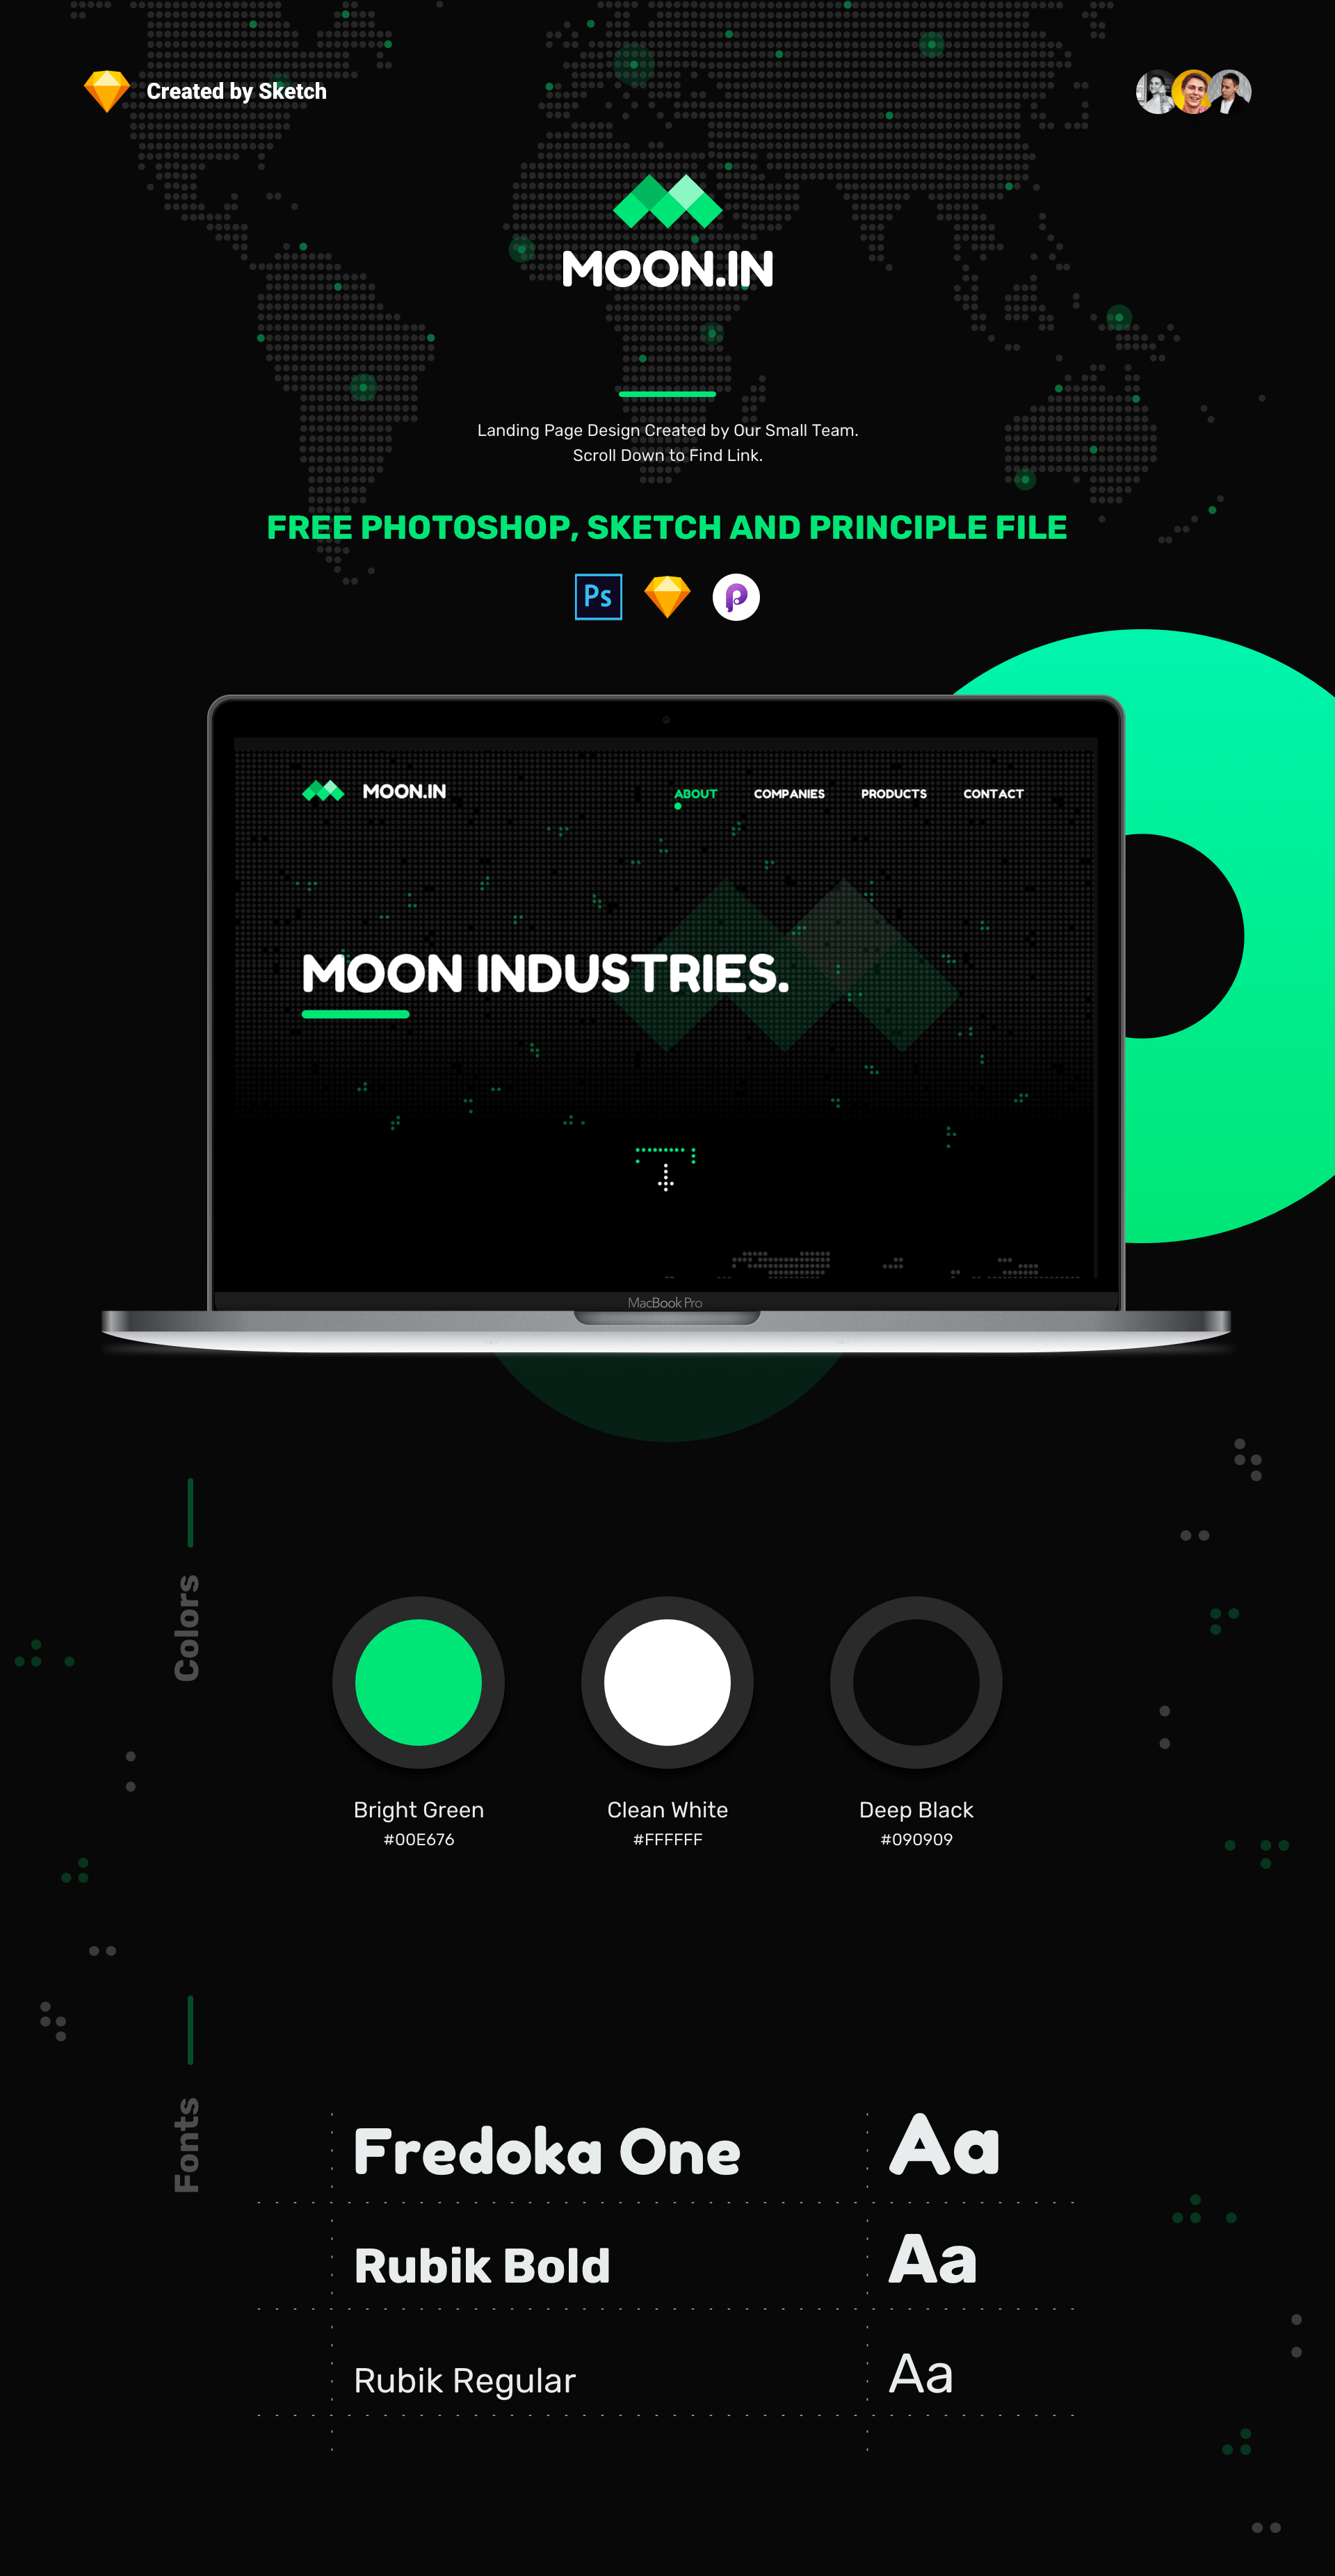 Freebie MOON.IN presentation image